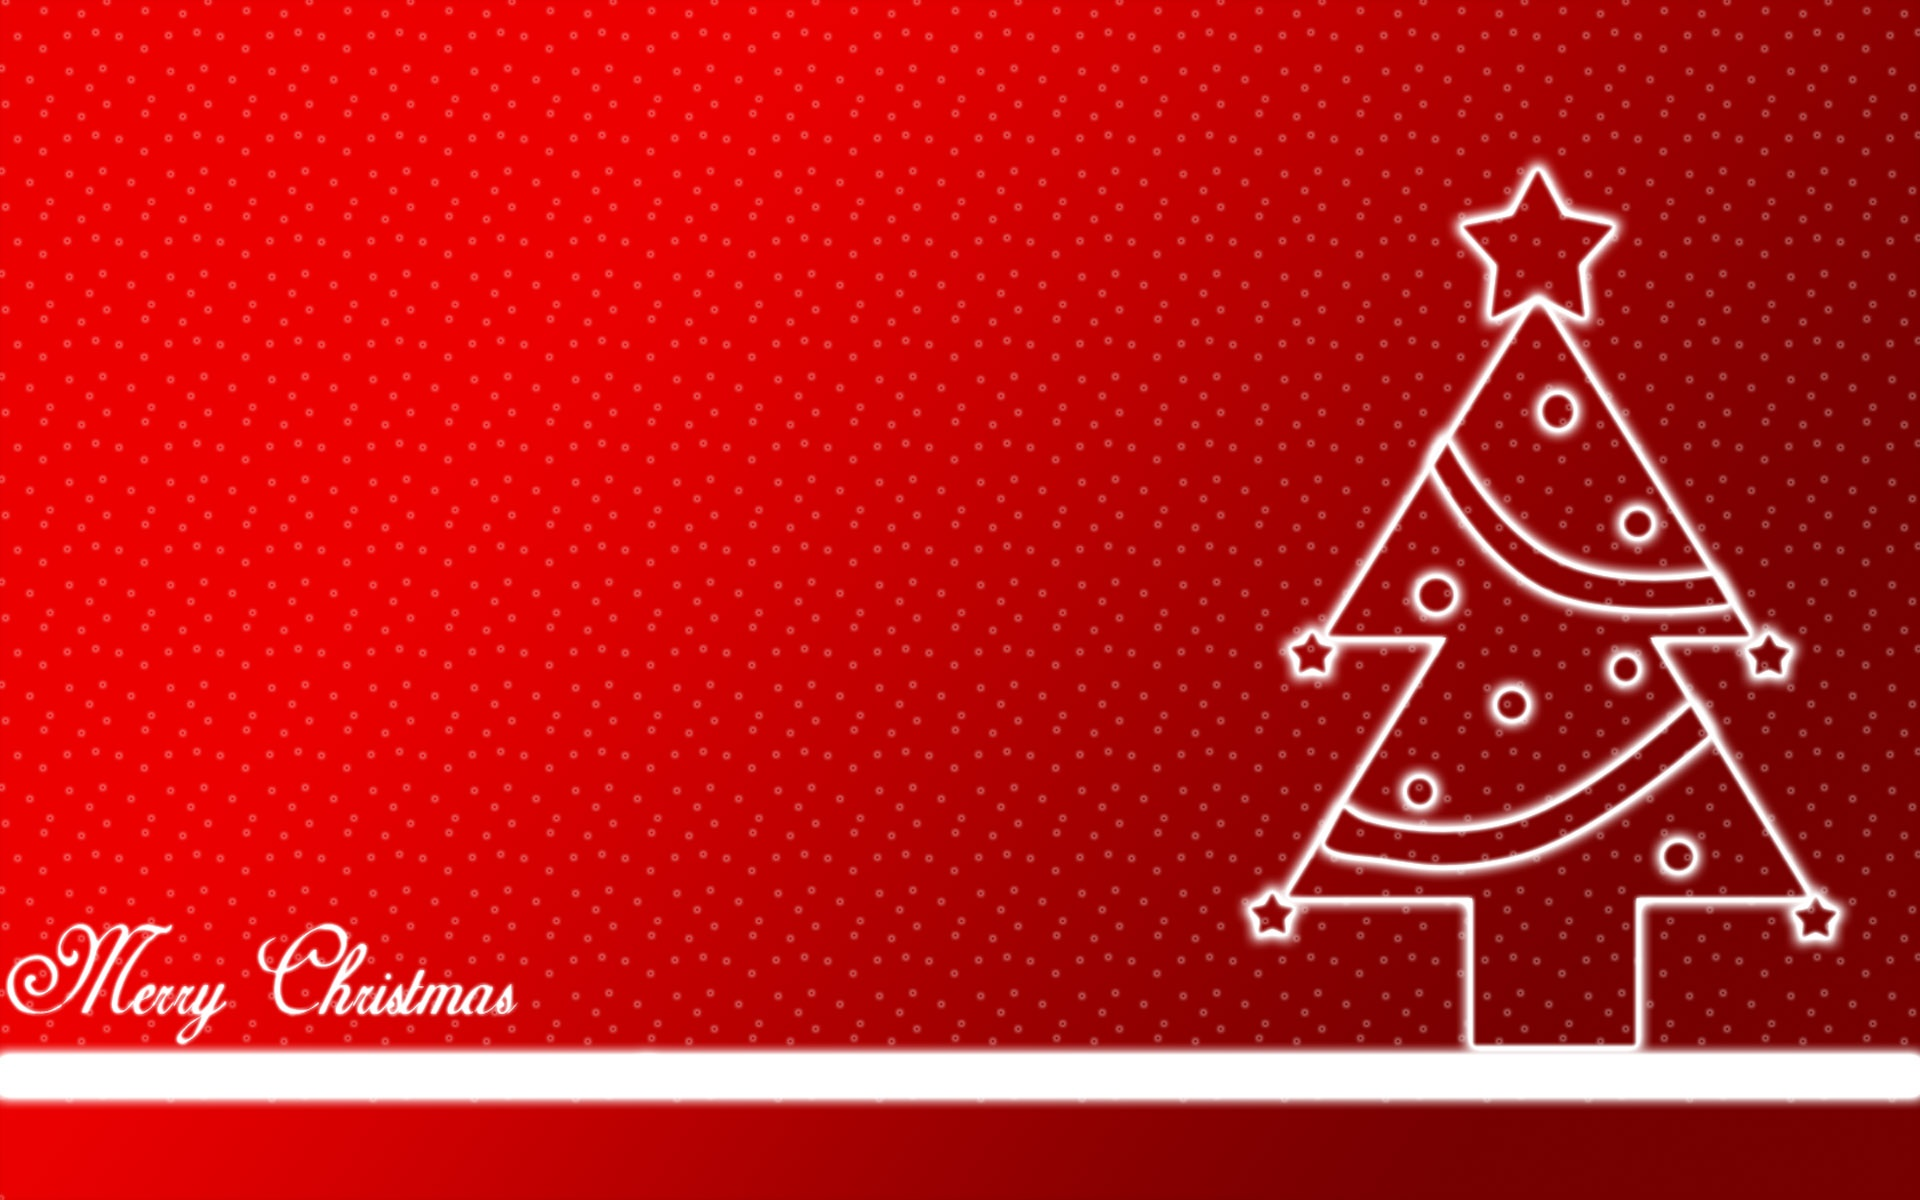 Merry Christmas Greetings in Red Background